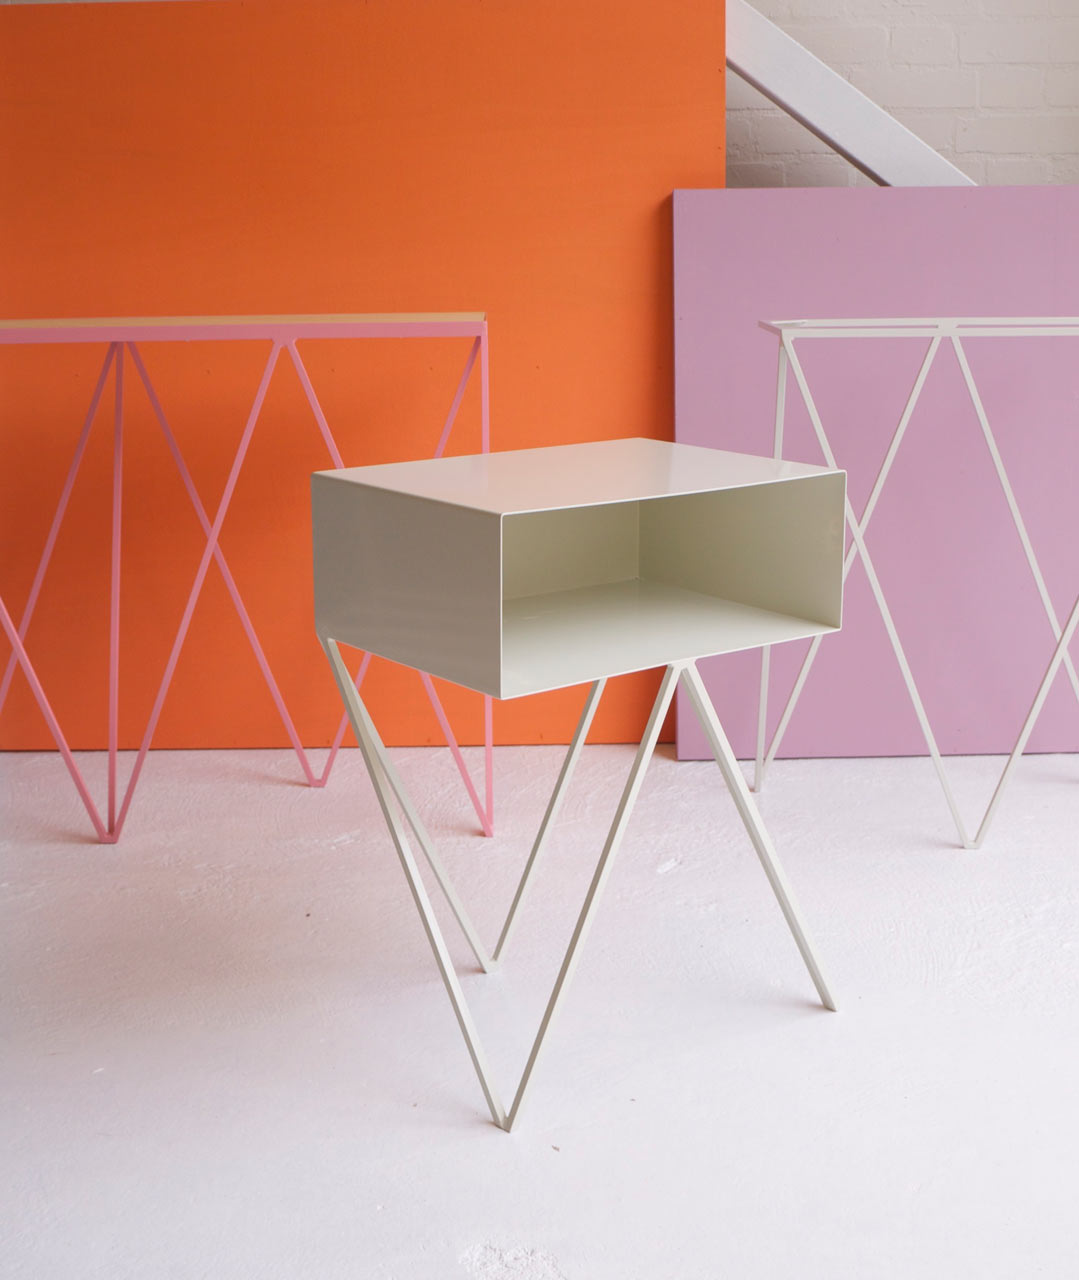 u0026new: modern, minimalist furniture made of ... RMHOQDX